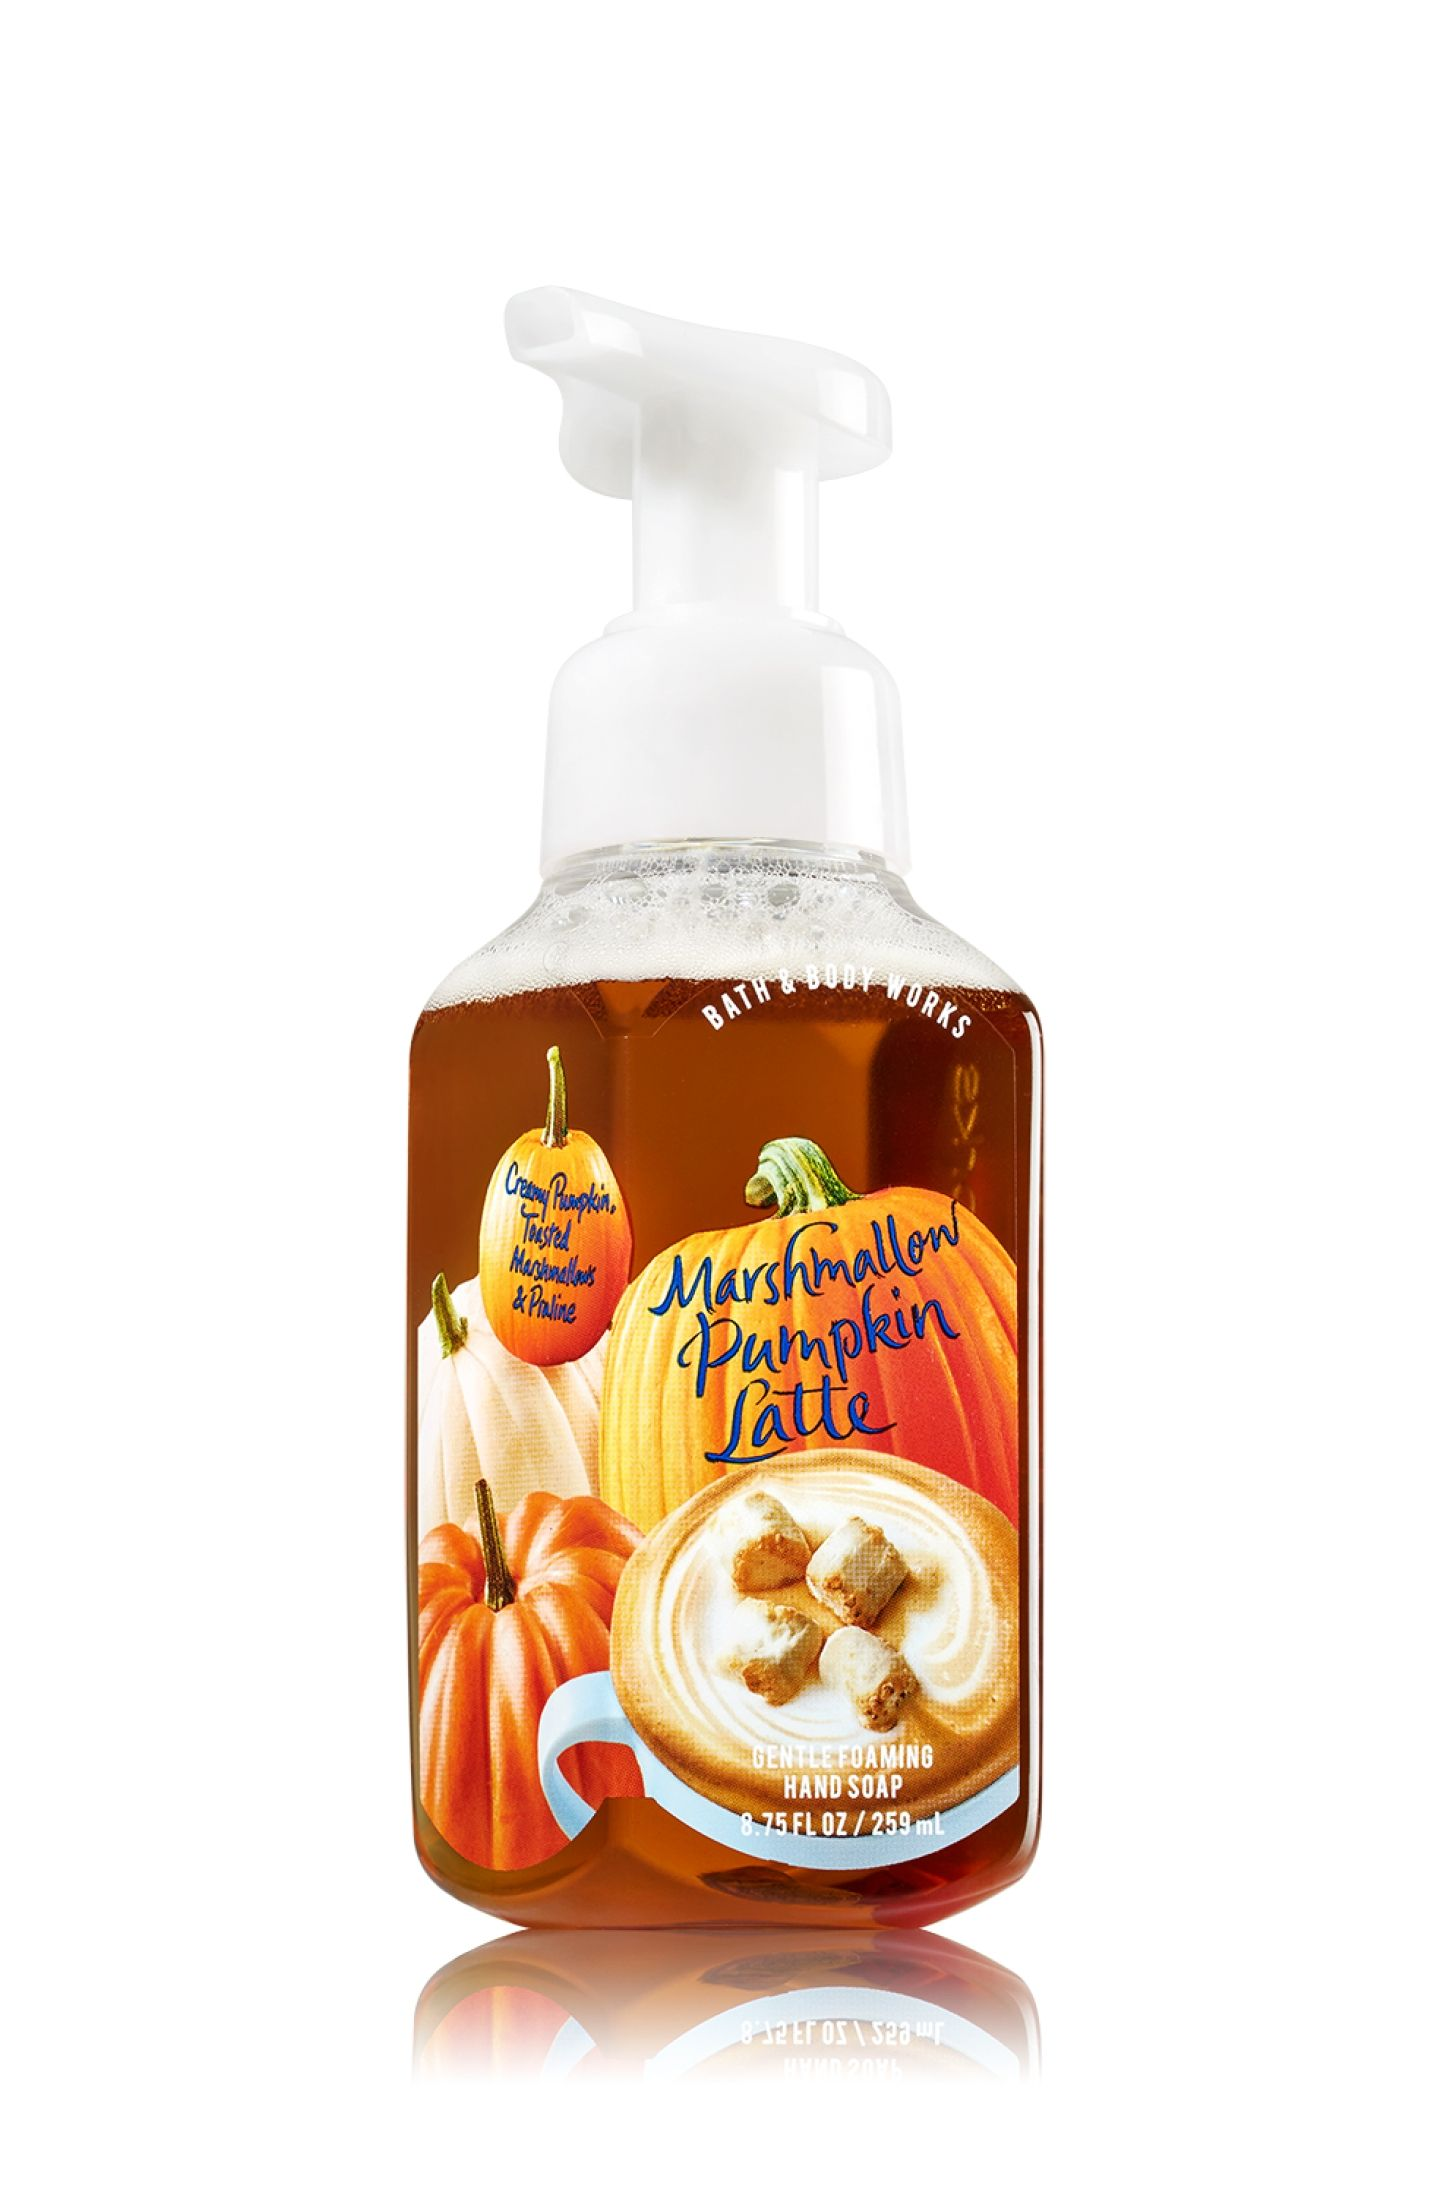 Marshmallow Pumpkin Latte Gentle Foaming Hand Soap Soap